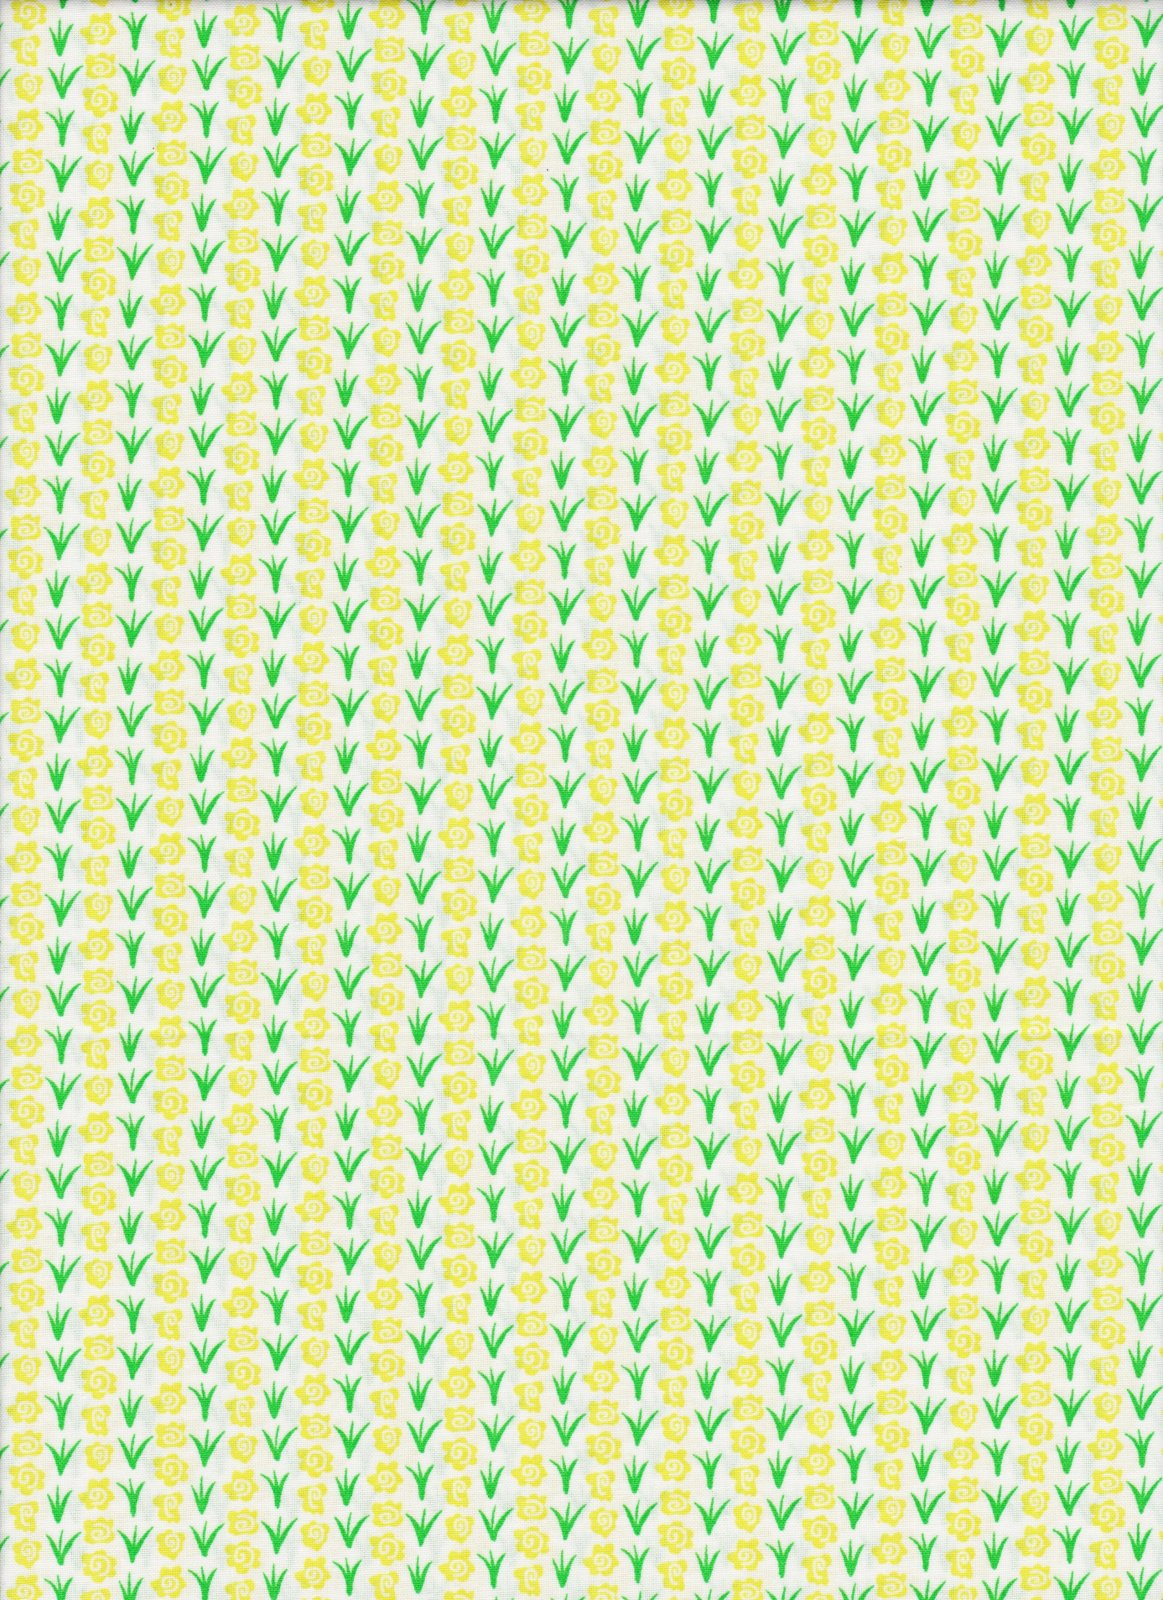 PROMO* FT-Children's Prints 49702 Green/Yellow - Calico Flower